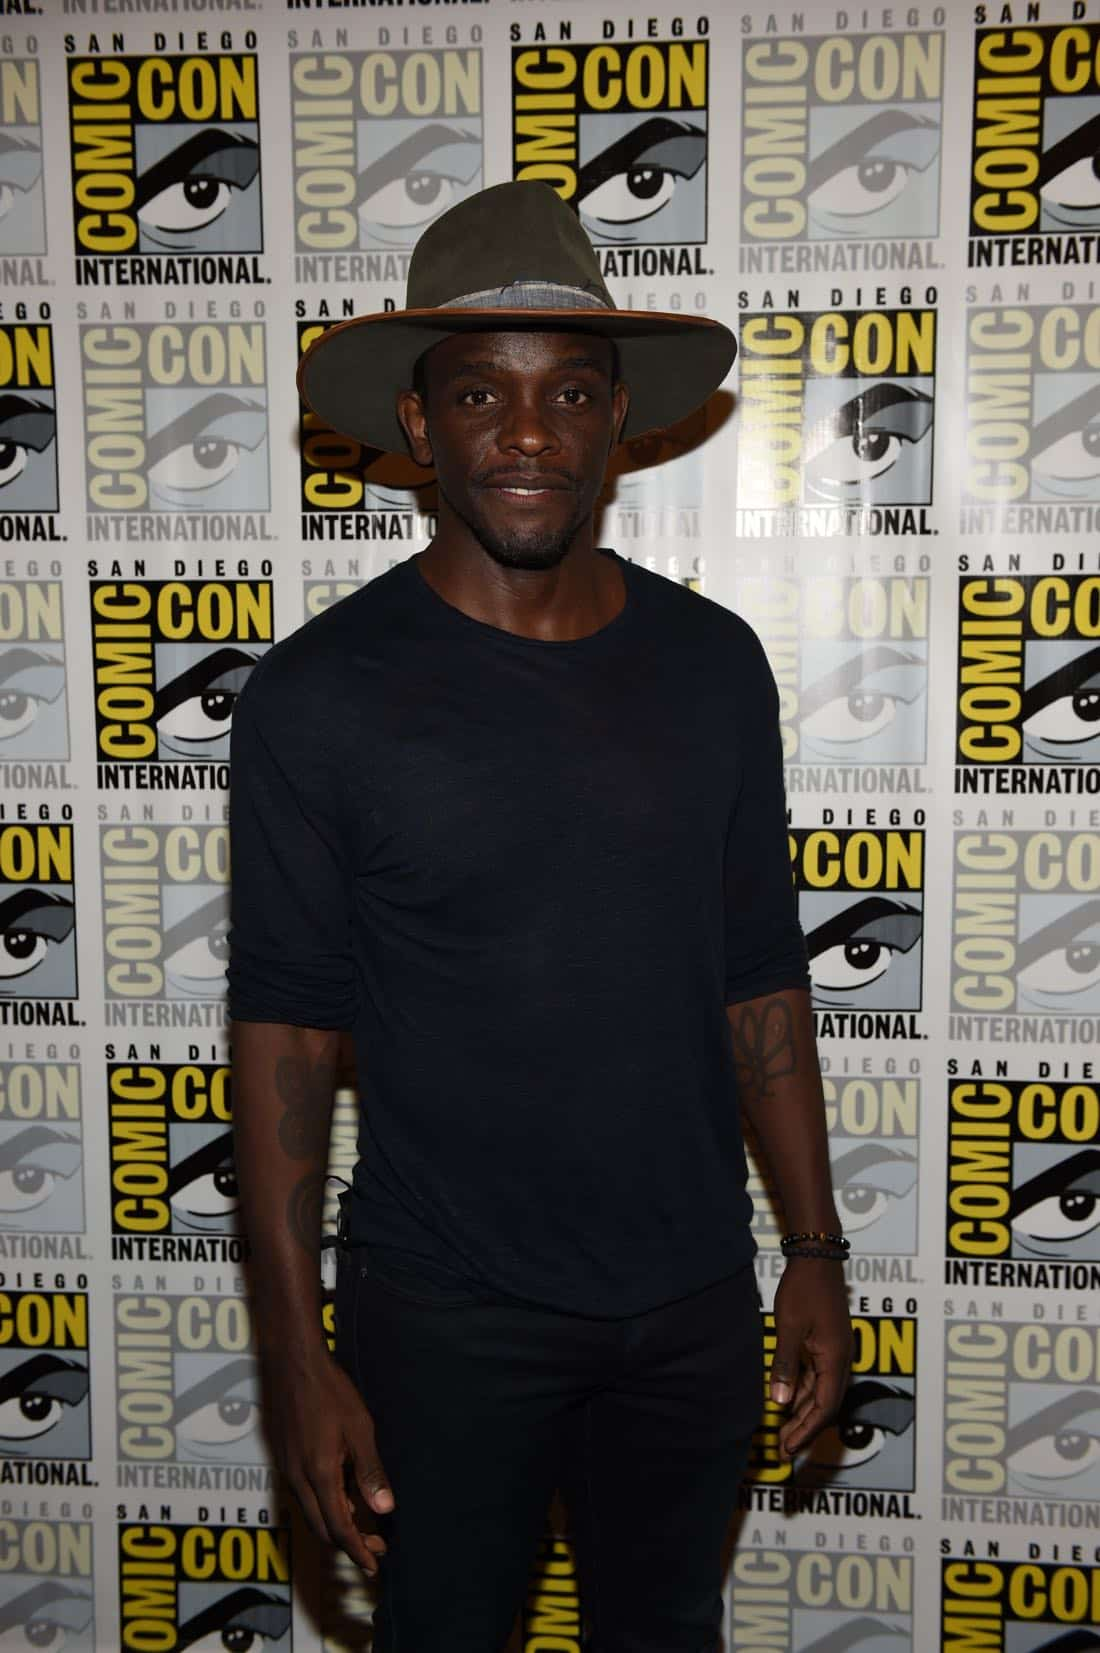 FOX FANFARE AT SAN DIEGO COMIC-CON © 2016: GOTHAM cast member Chris Chalk during GOTHAM press room on Saturday, July 23 at the FOX FANFARE AT SAN DIEGO COMIC-CON © 2016. CR: Scott Kirkland/FOX © 2016 FOX BROADCASTING